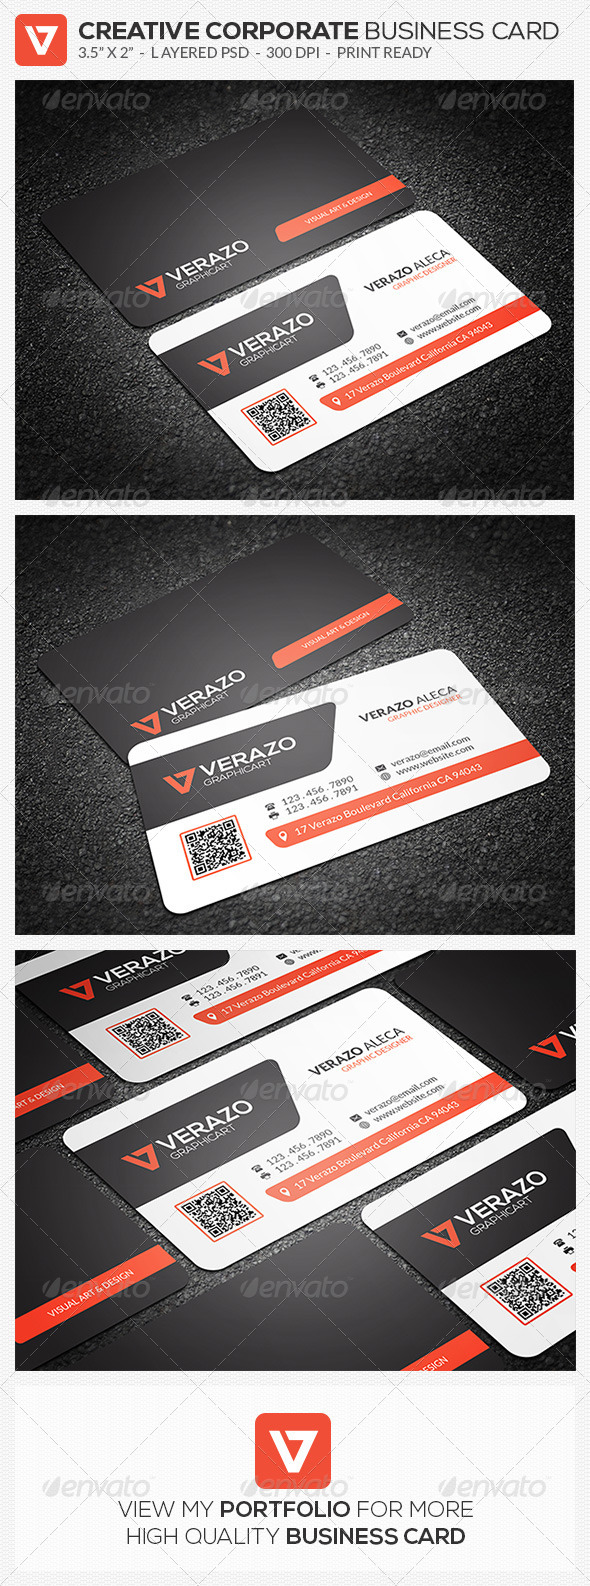 GraphicRiver Creative Corporate Business Card 56 8646594